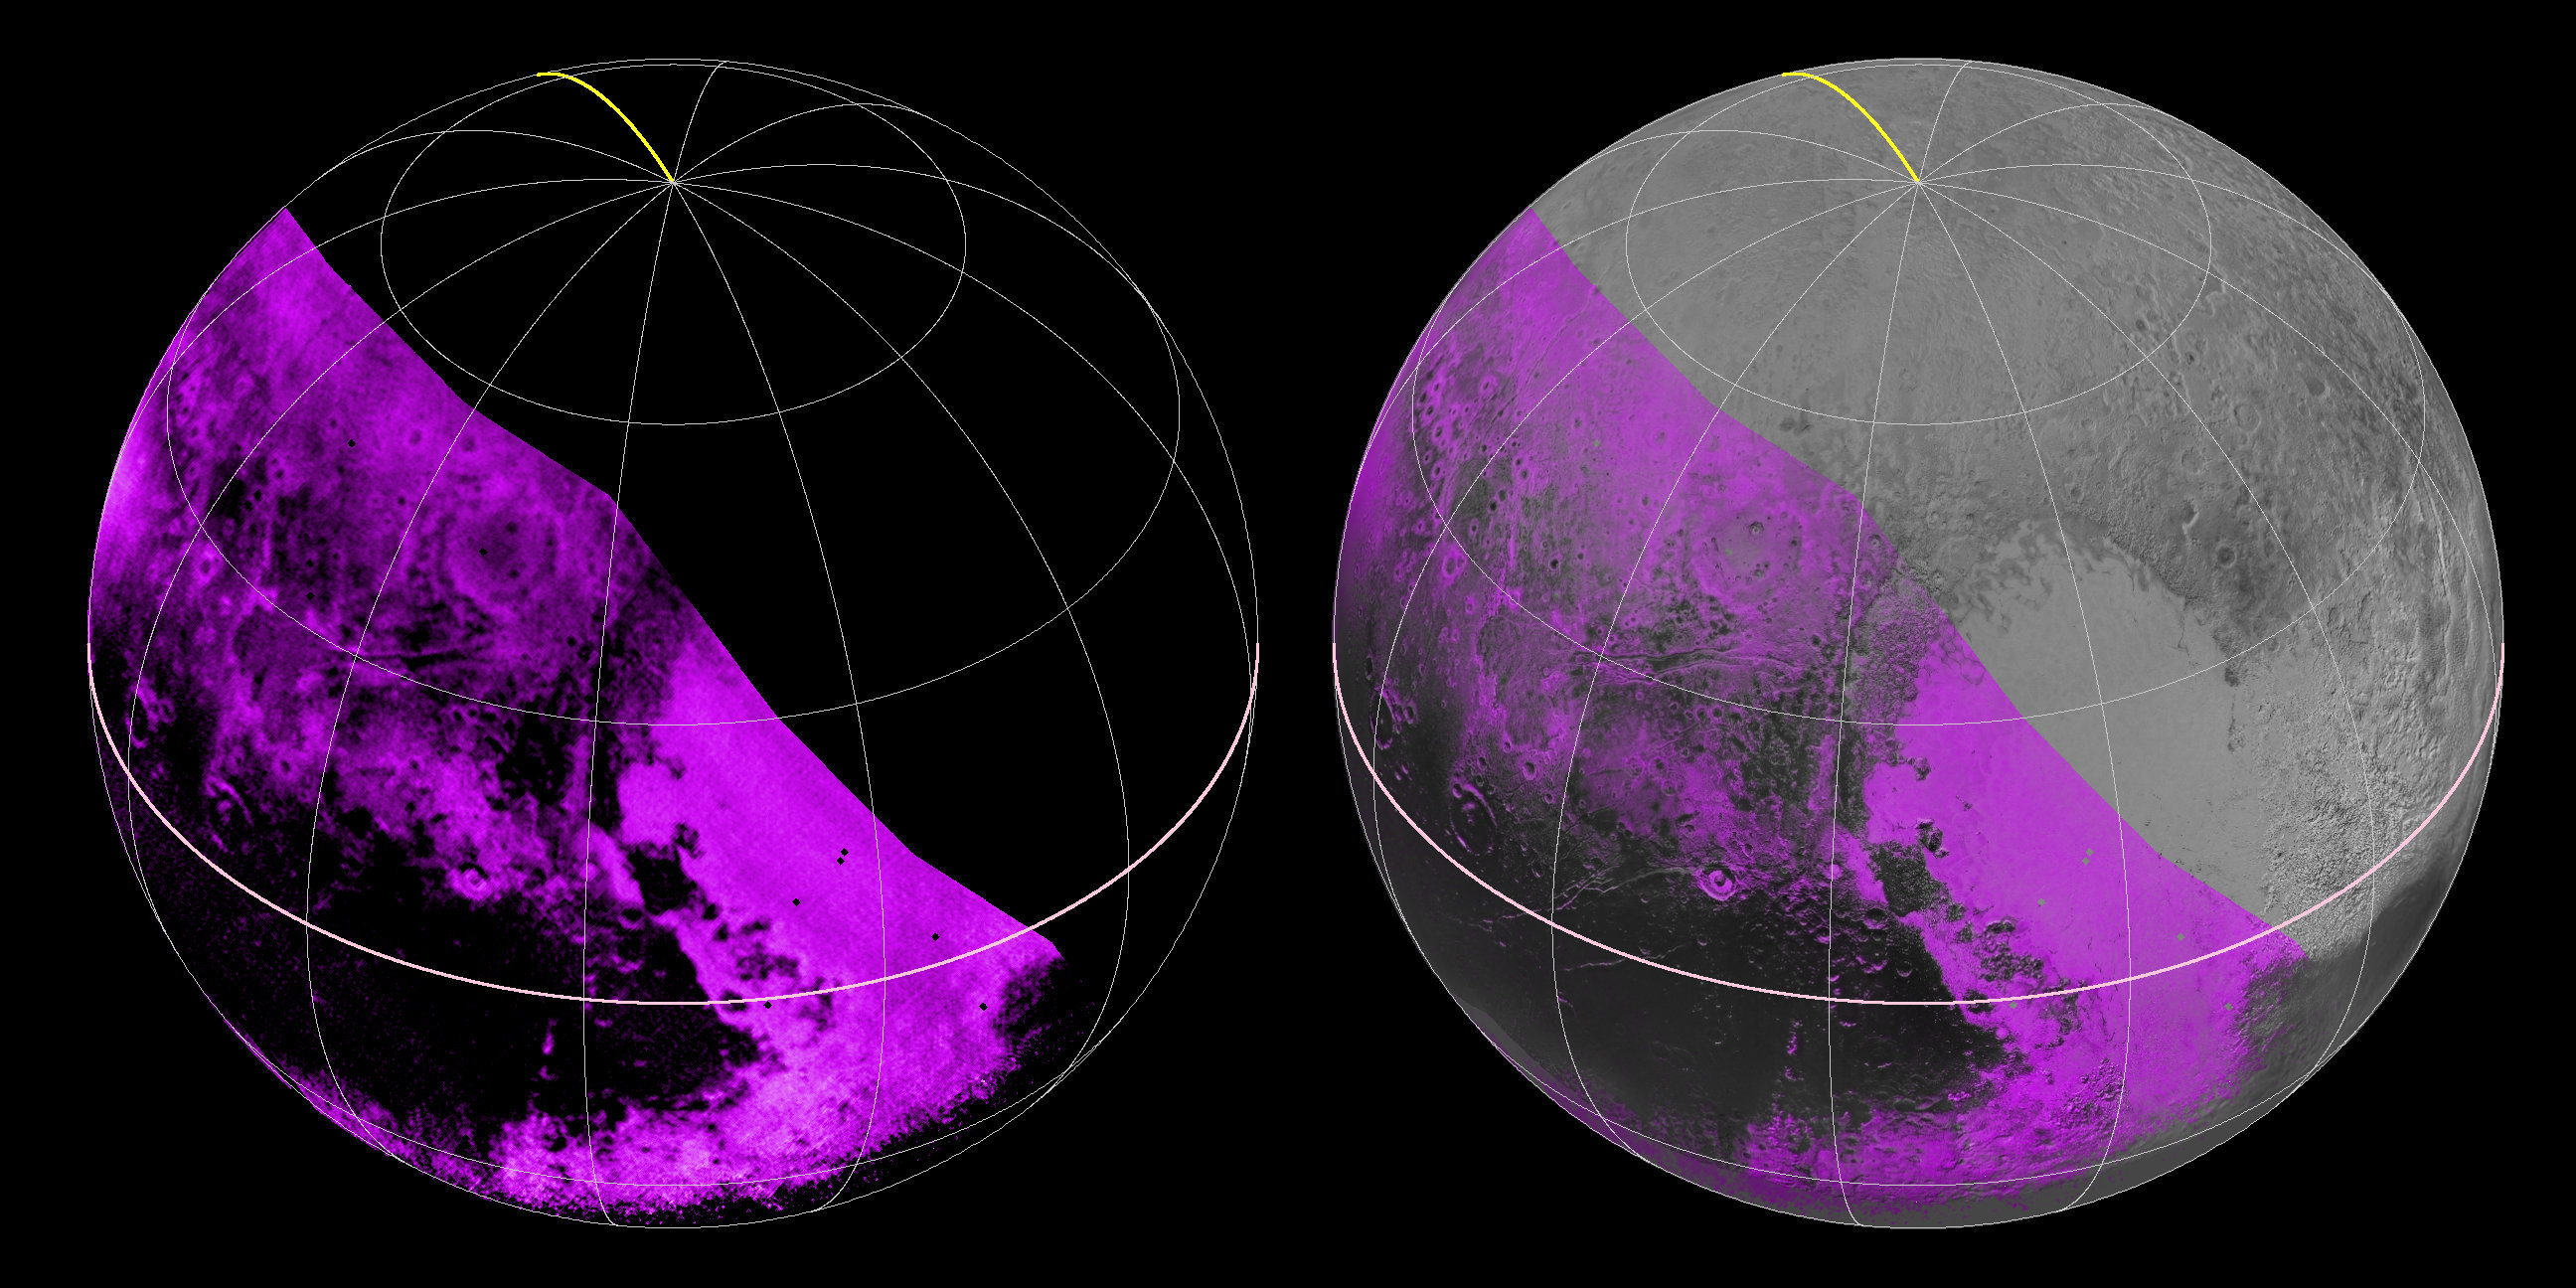 On the left, a map of methane ice abundance shows striking regional differences, with stronger methane absorption indicated by the brighter purple colors here, and lower abundances shown in black. Data have only been received so far for the left half of Pluto's disk. At right, the methane map is merged with higher-resolution images from the spacecraft's Long Range Reconnaissance Imager